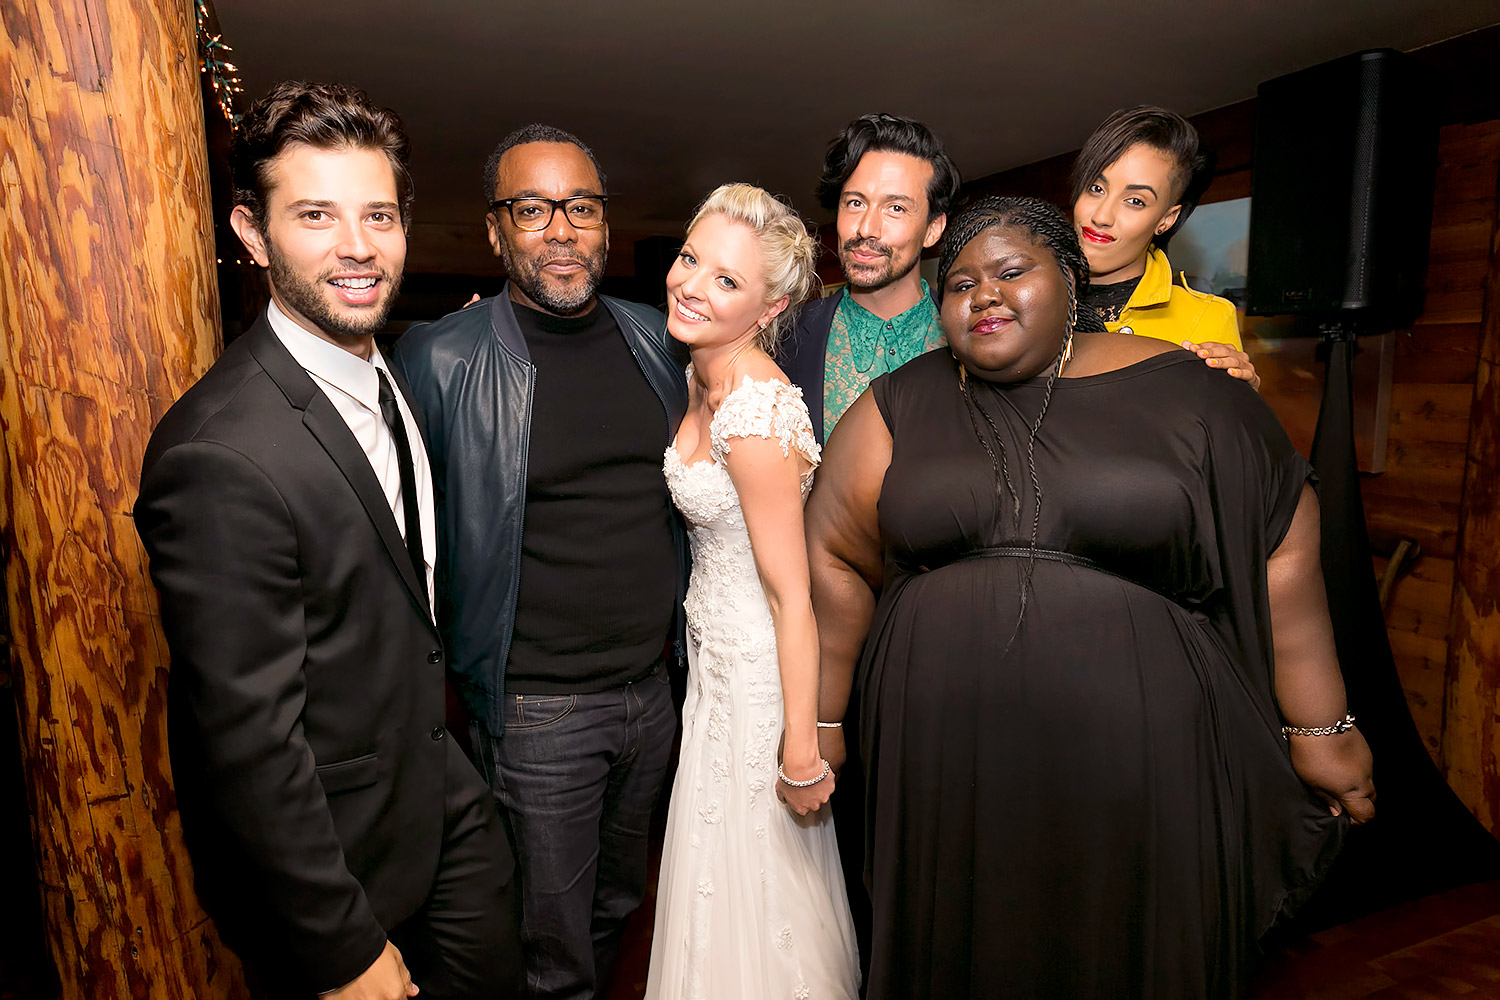 Kaitlin Doubleday Wedding Empire cast